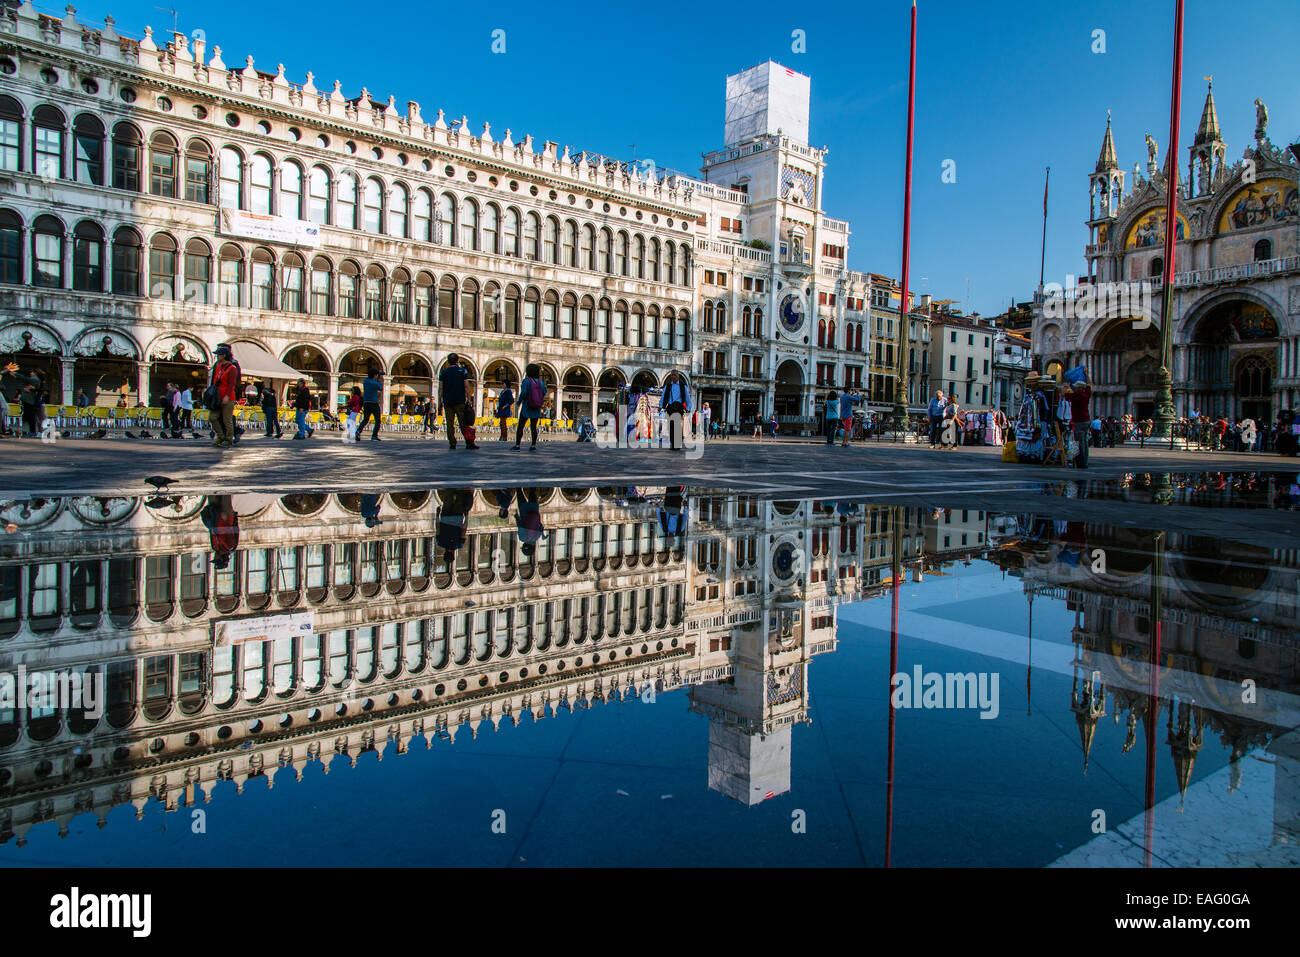 St. Mark's square reflected in a puddle, Venice, Veneto, Italy - Stock Image